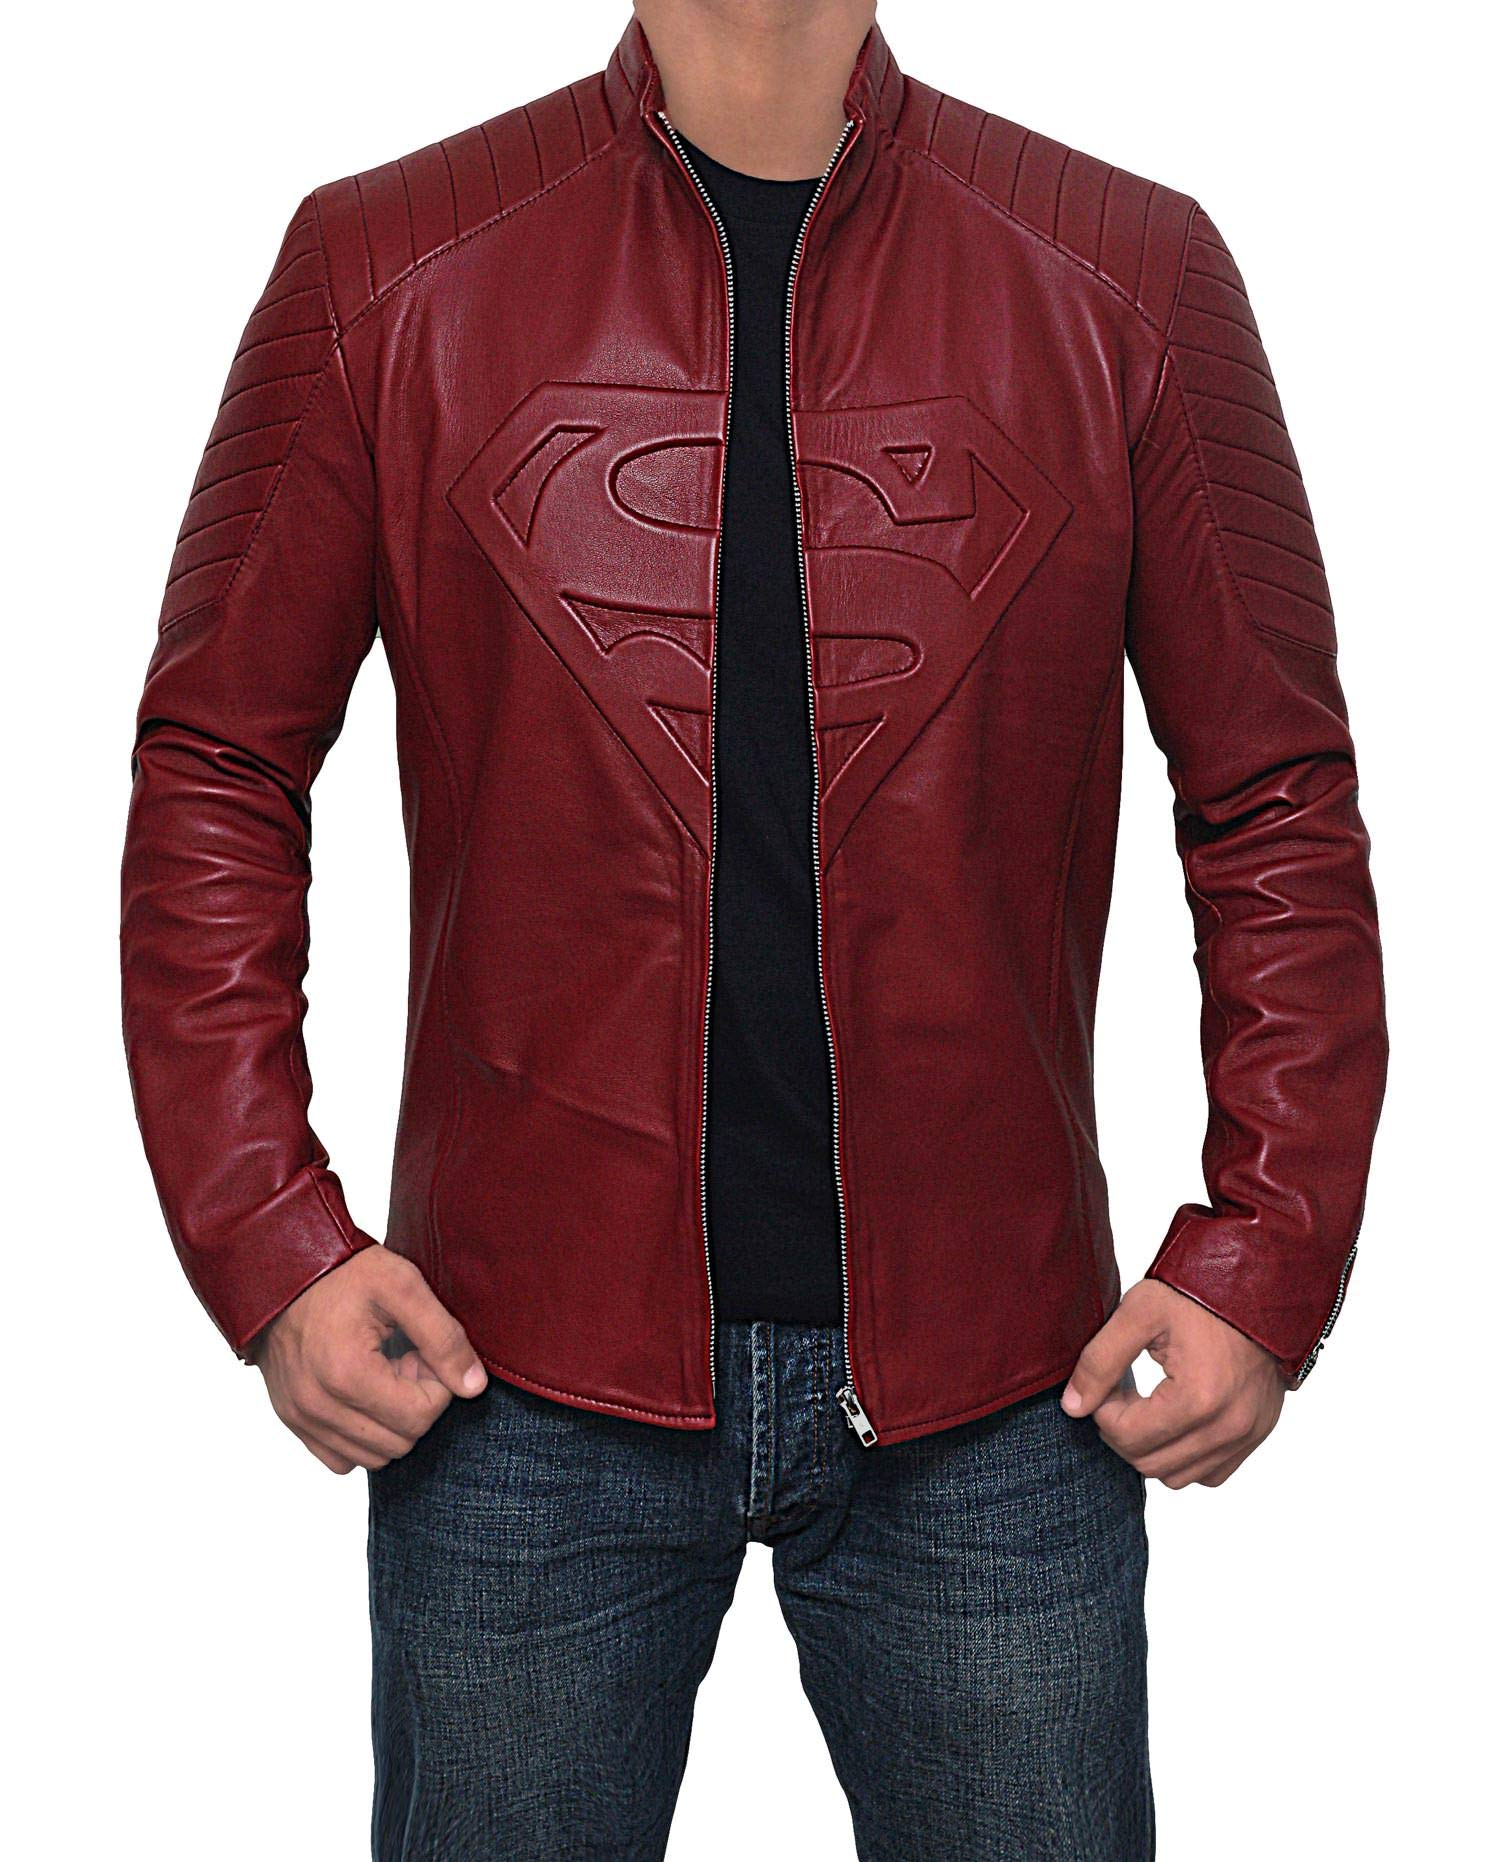 Superman Leather Jacket for Men - Superhero Red Leather Logo Superman Costume Jackets for Adults | 3XL